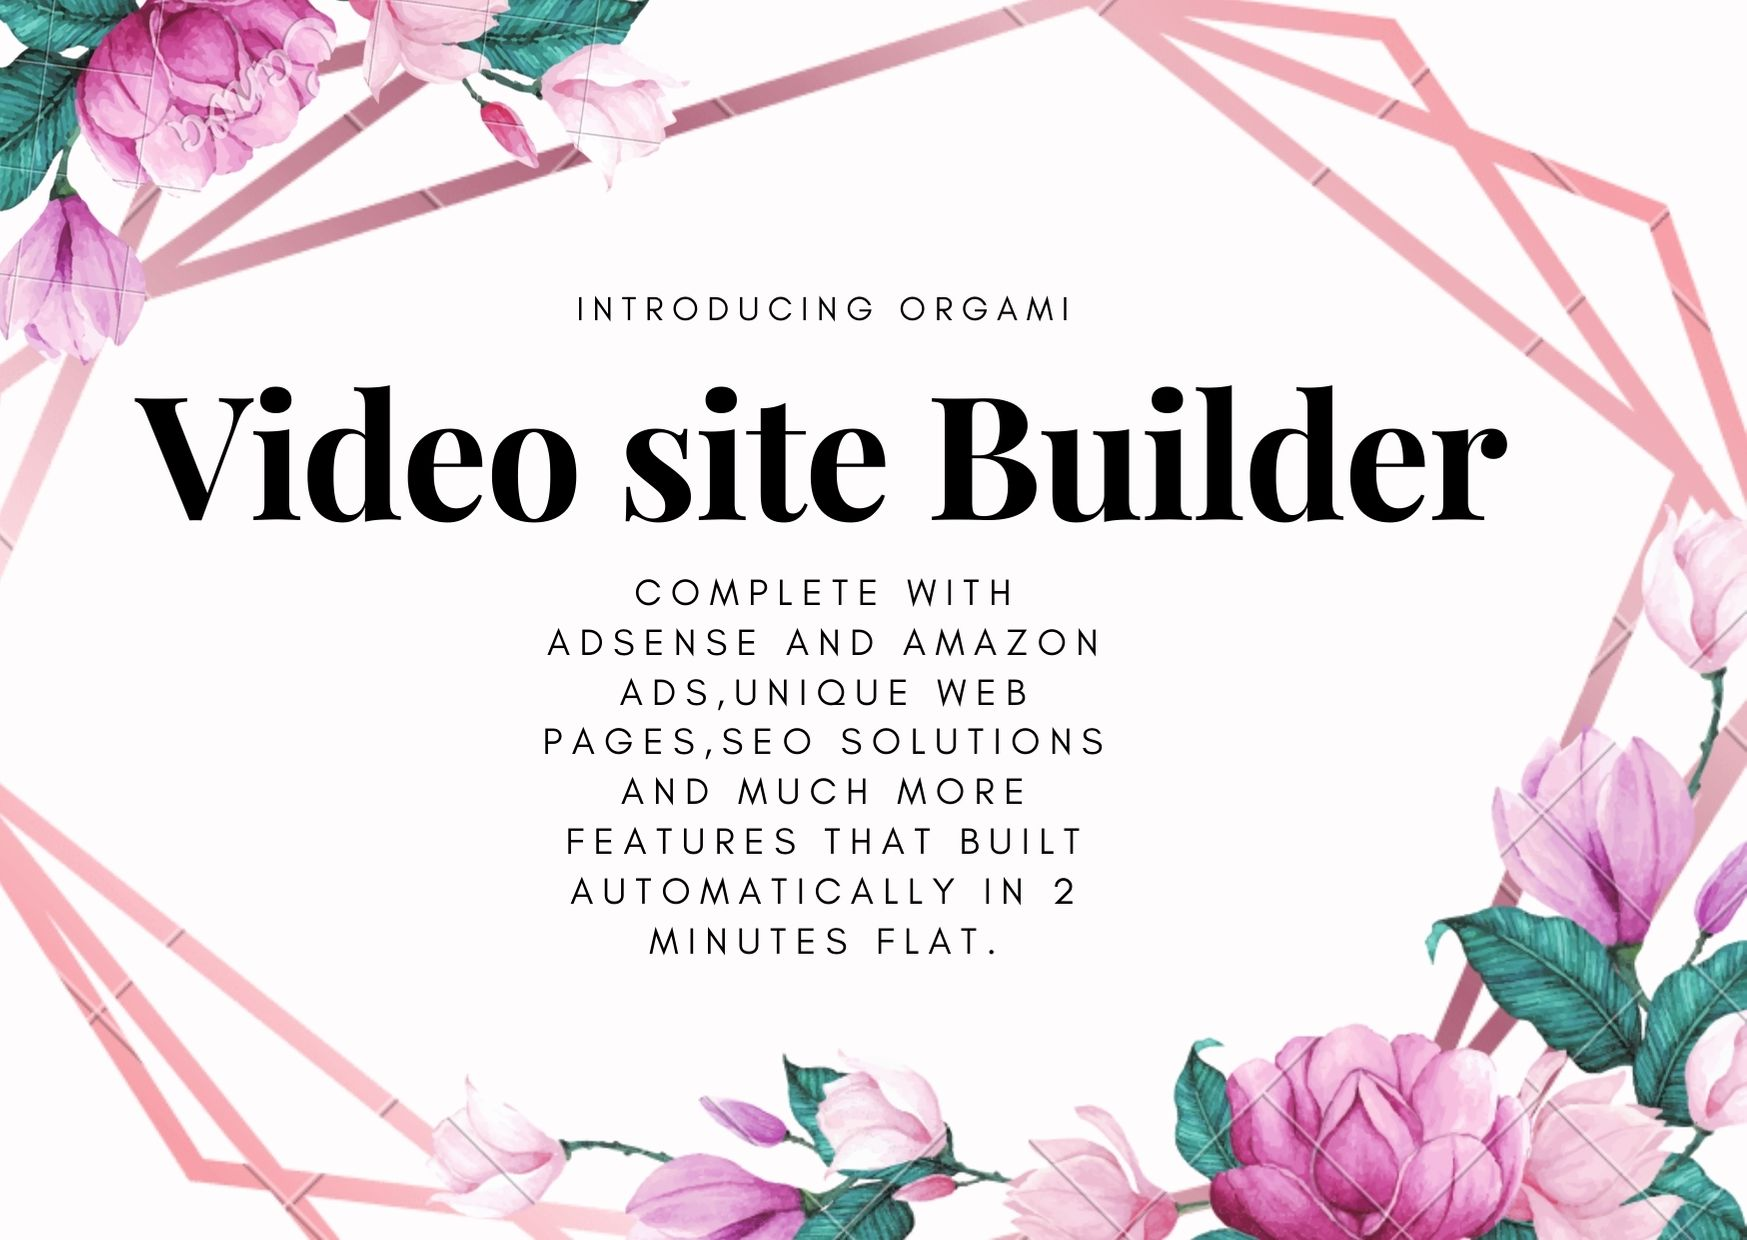 Intoducing Origami Video Site Builder. This software will help you to instantly create your own money